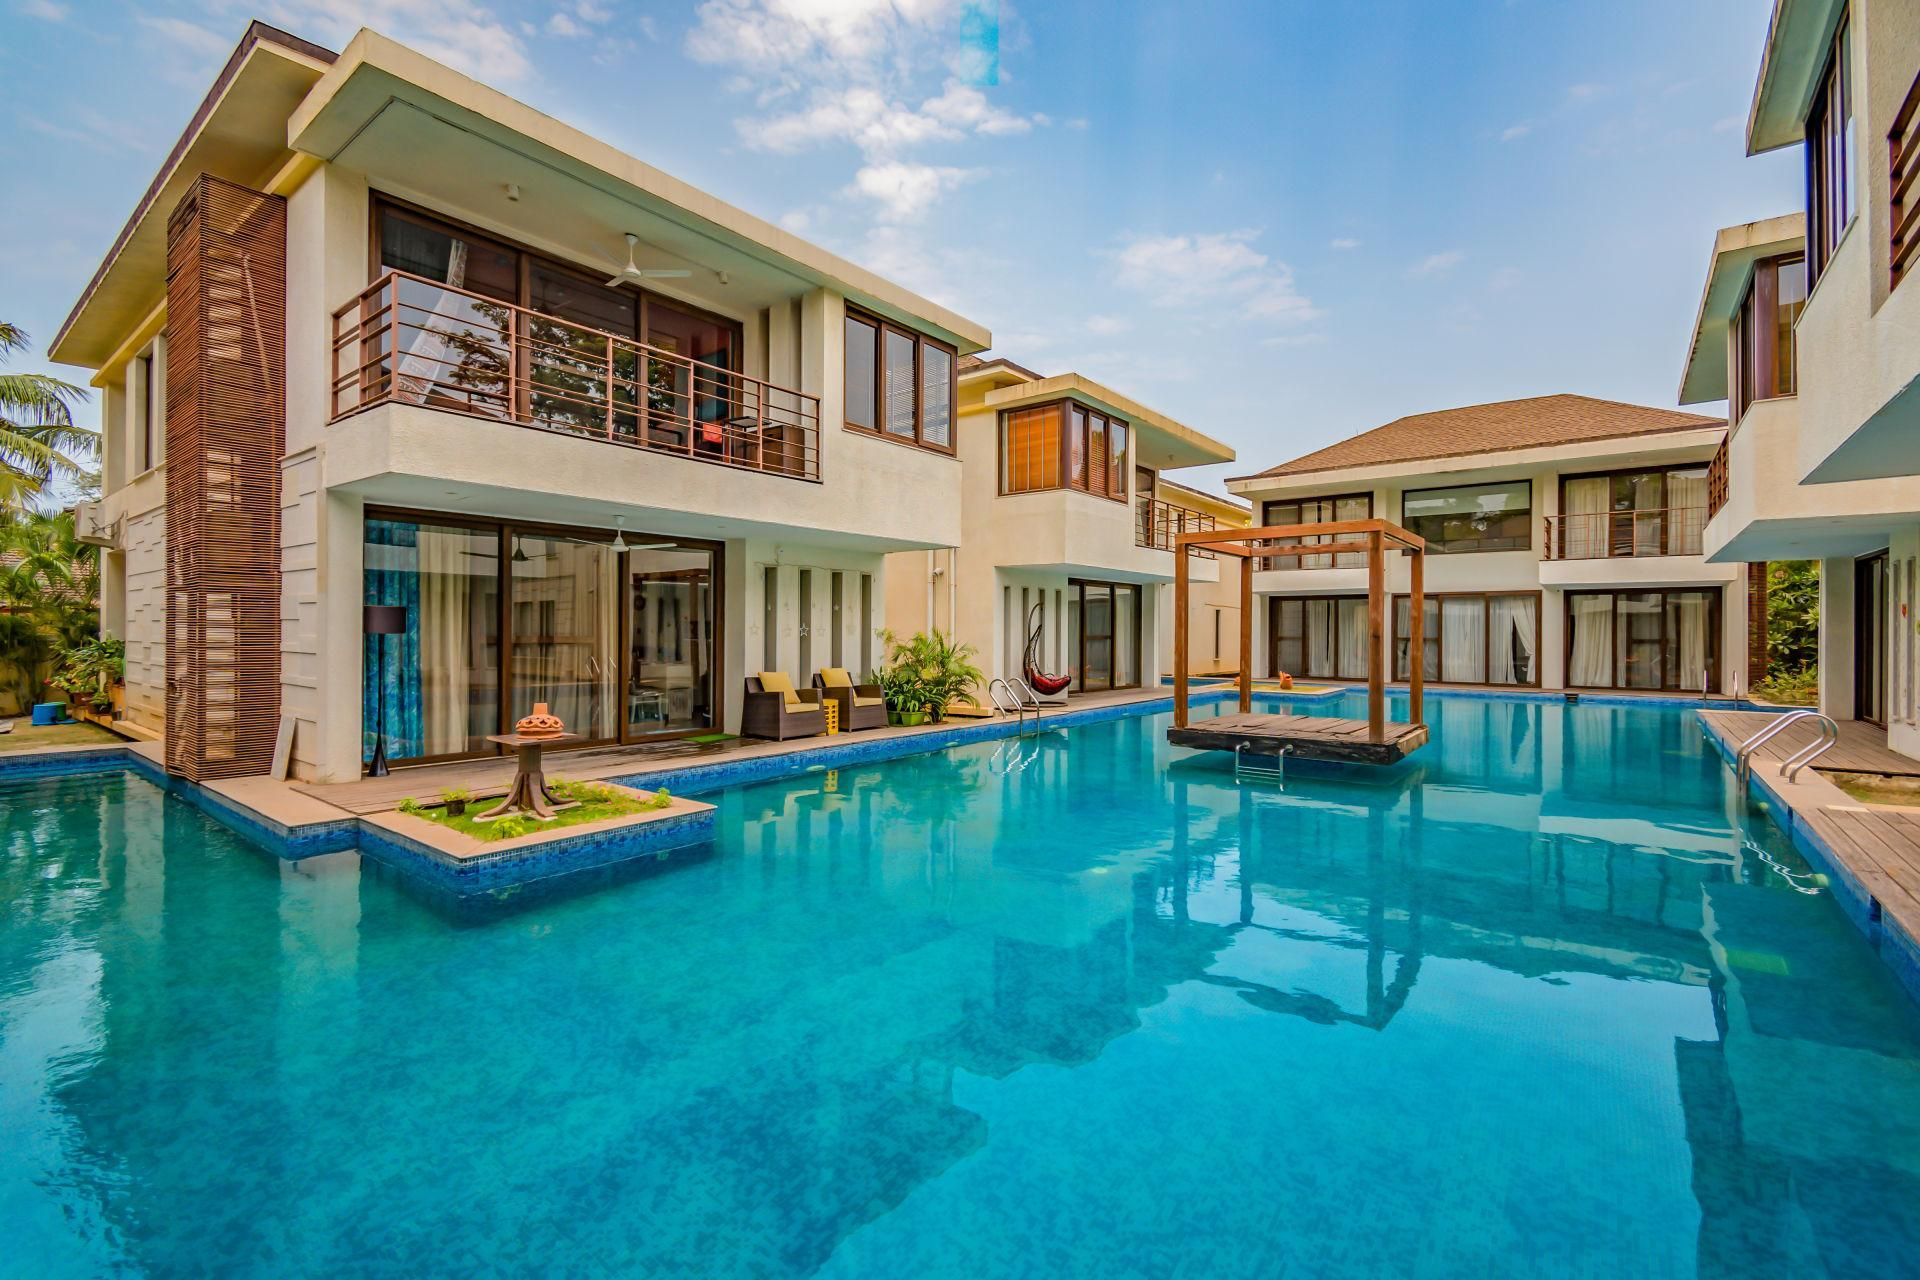 Serviced Villa With Pool In Vagator 73565